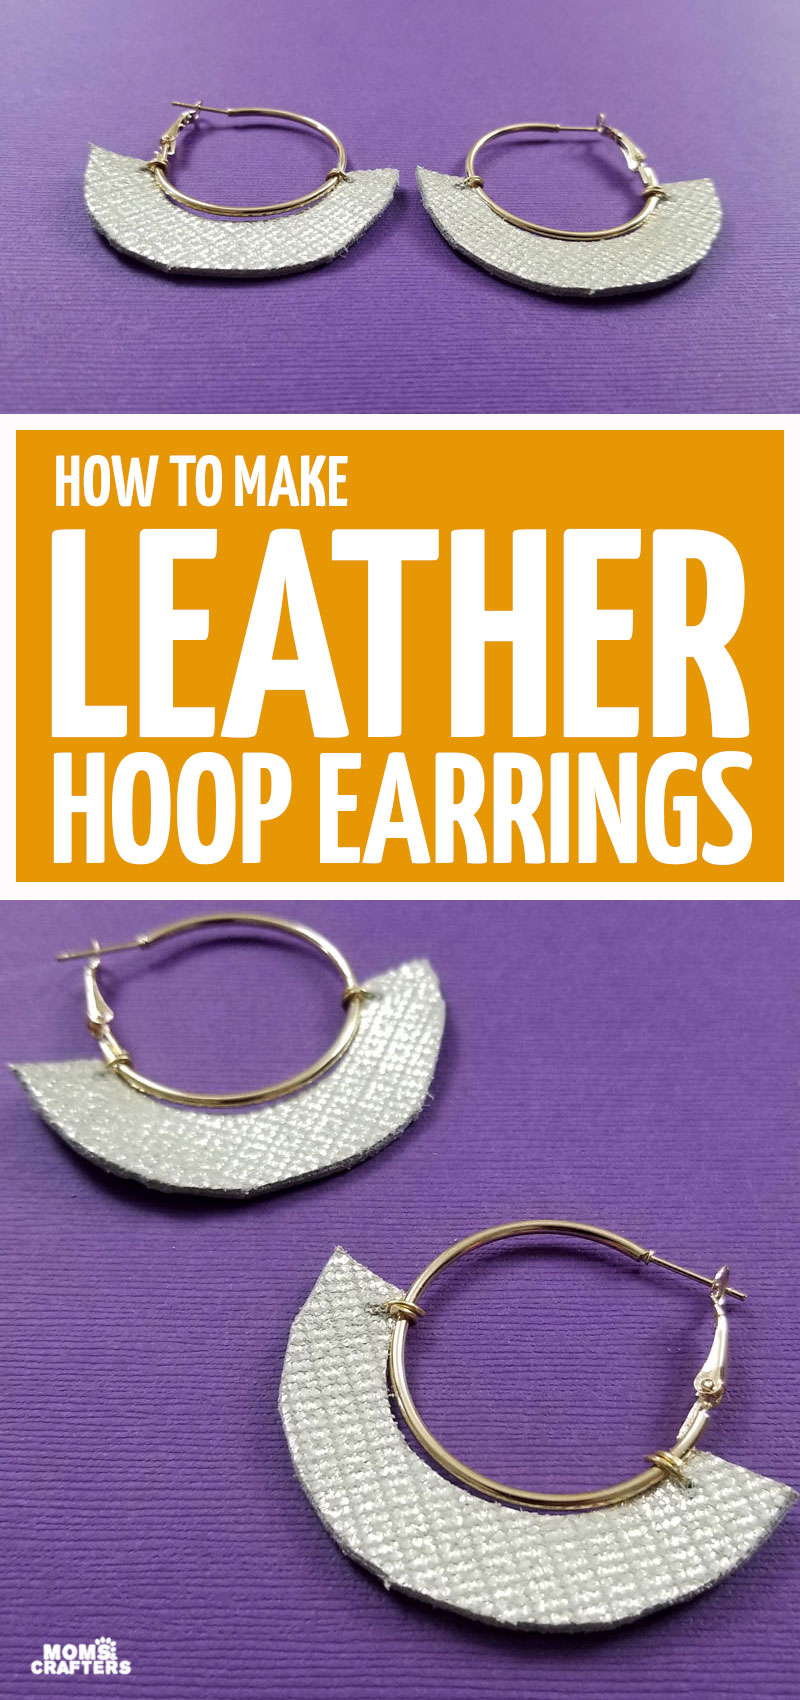 Click to learn how to make DIY leather hoop earrings using just a few materials! You need no experience to make this beginner jewelry making project and leather craft!